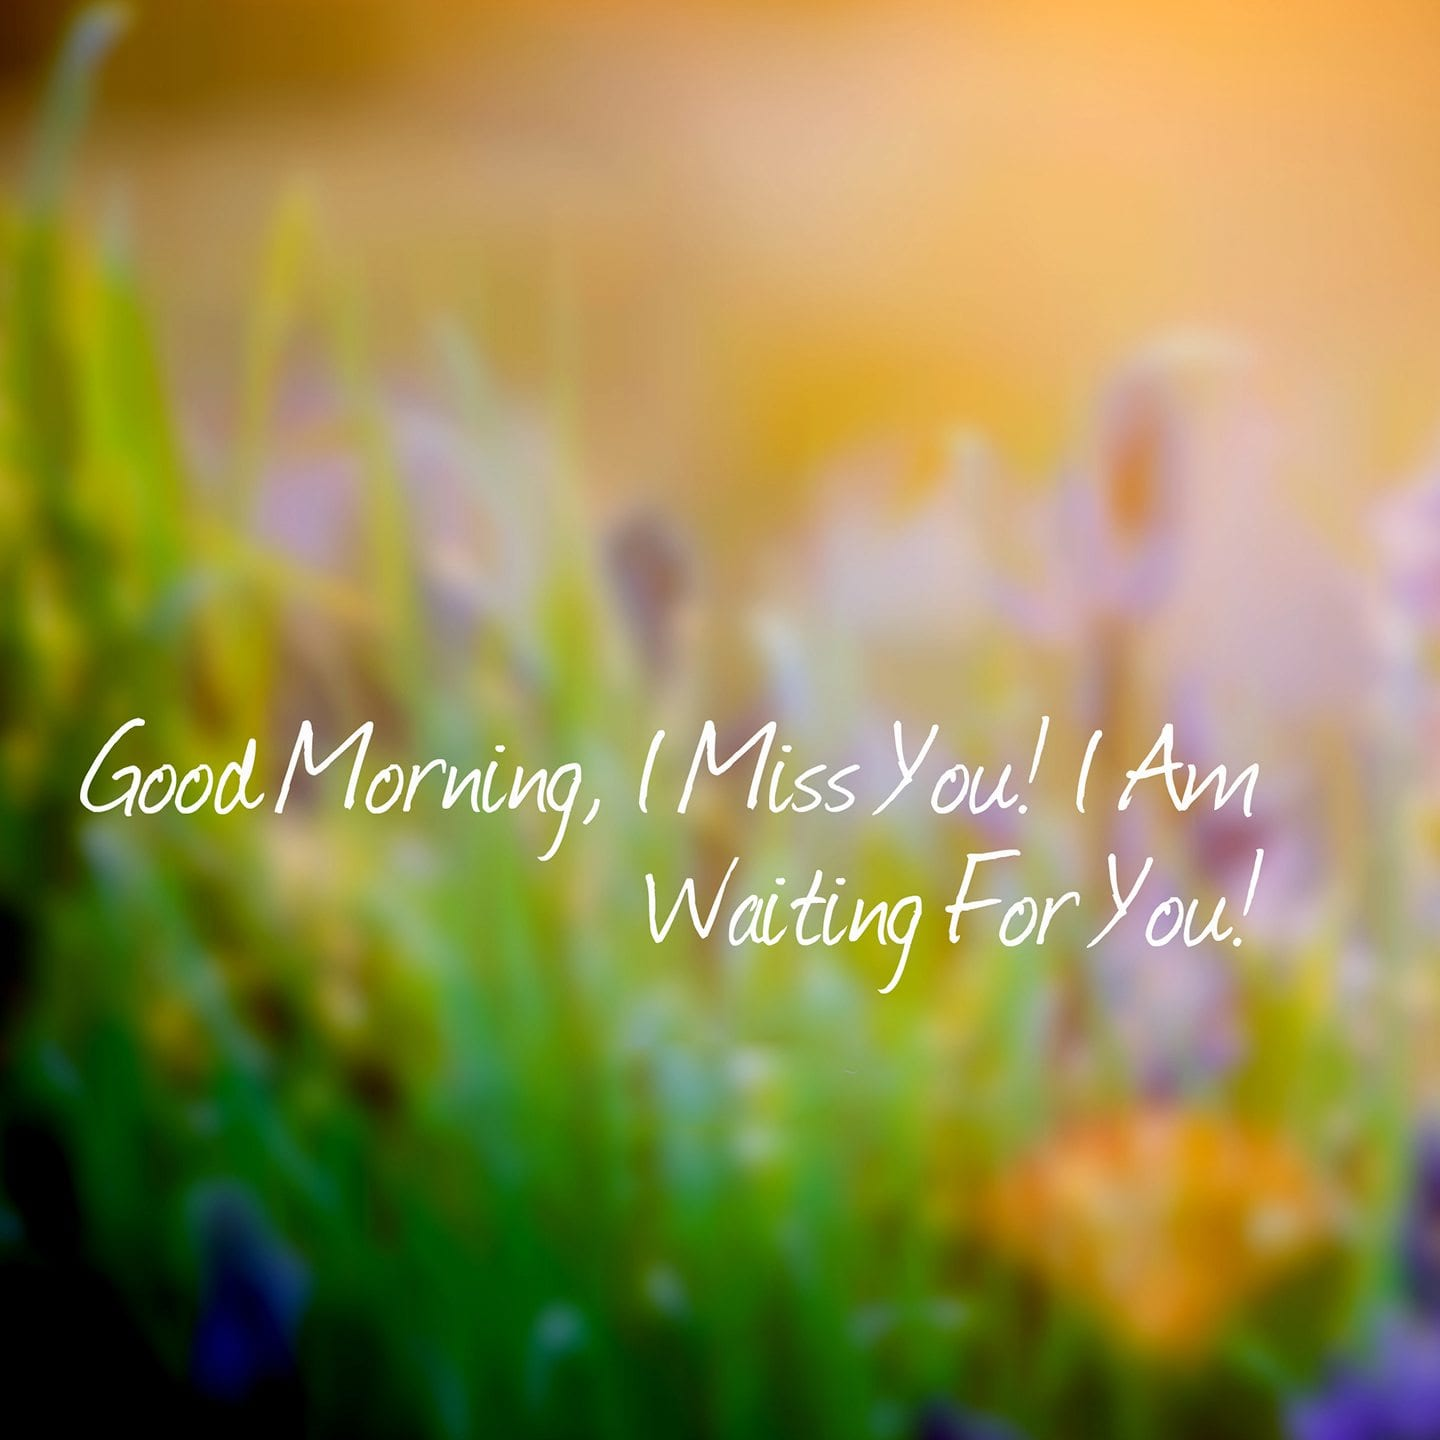 Good-Morning-I-Miss-You-I-Am-Waiting-For-You1